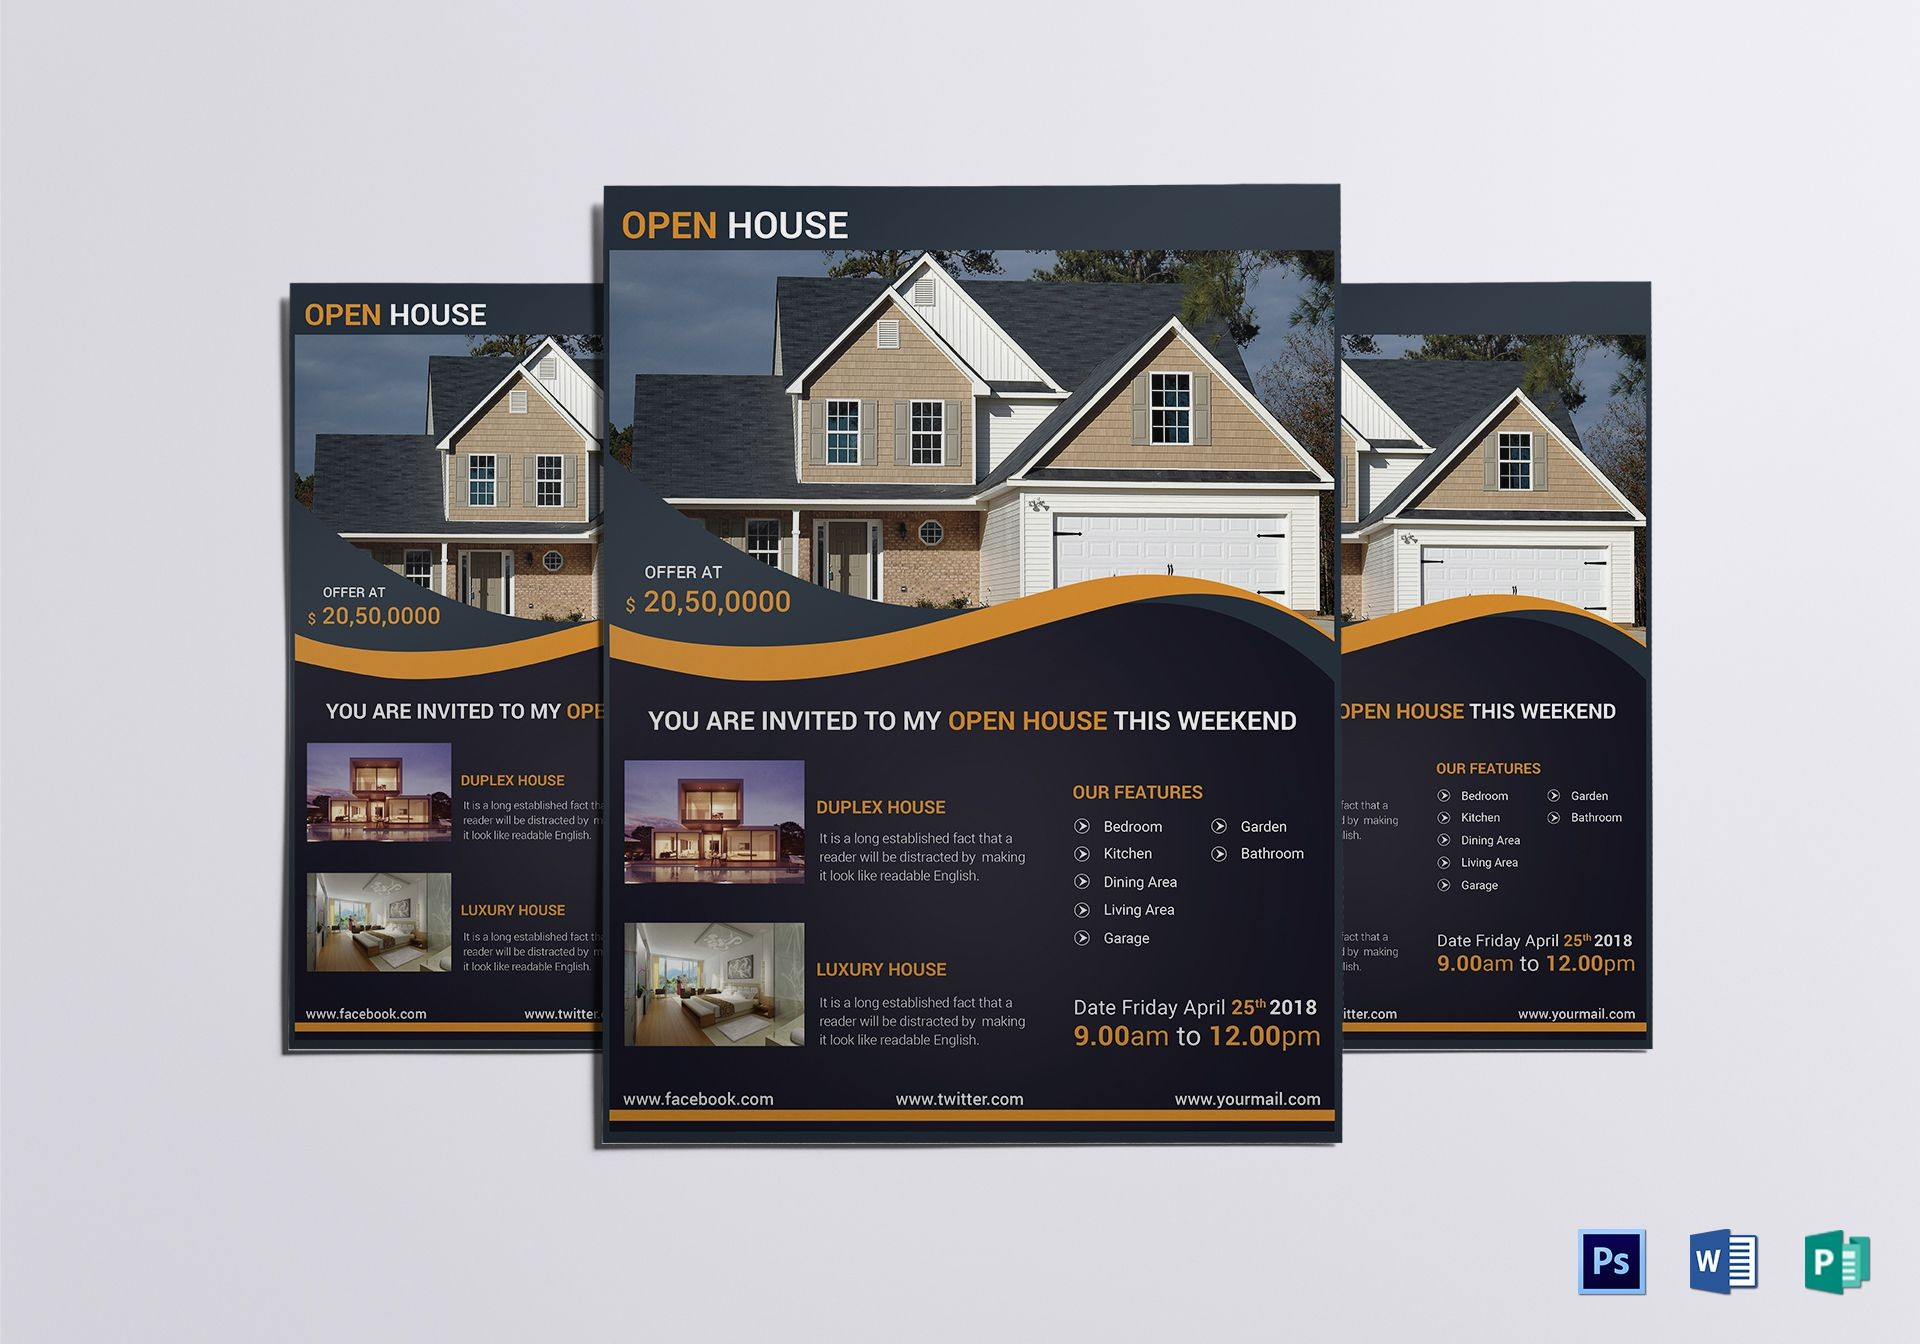 007 Simple Open House Flyer Template High Def  Templates Word Free School Microsoft1920